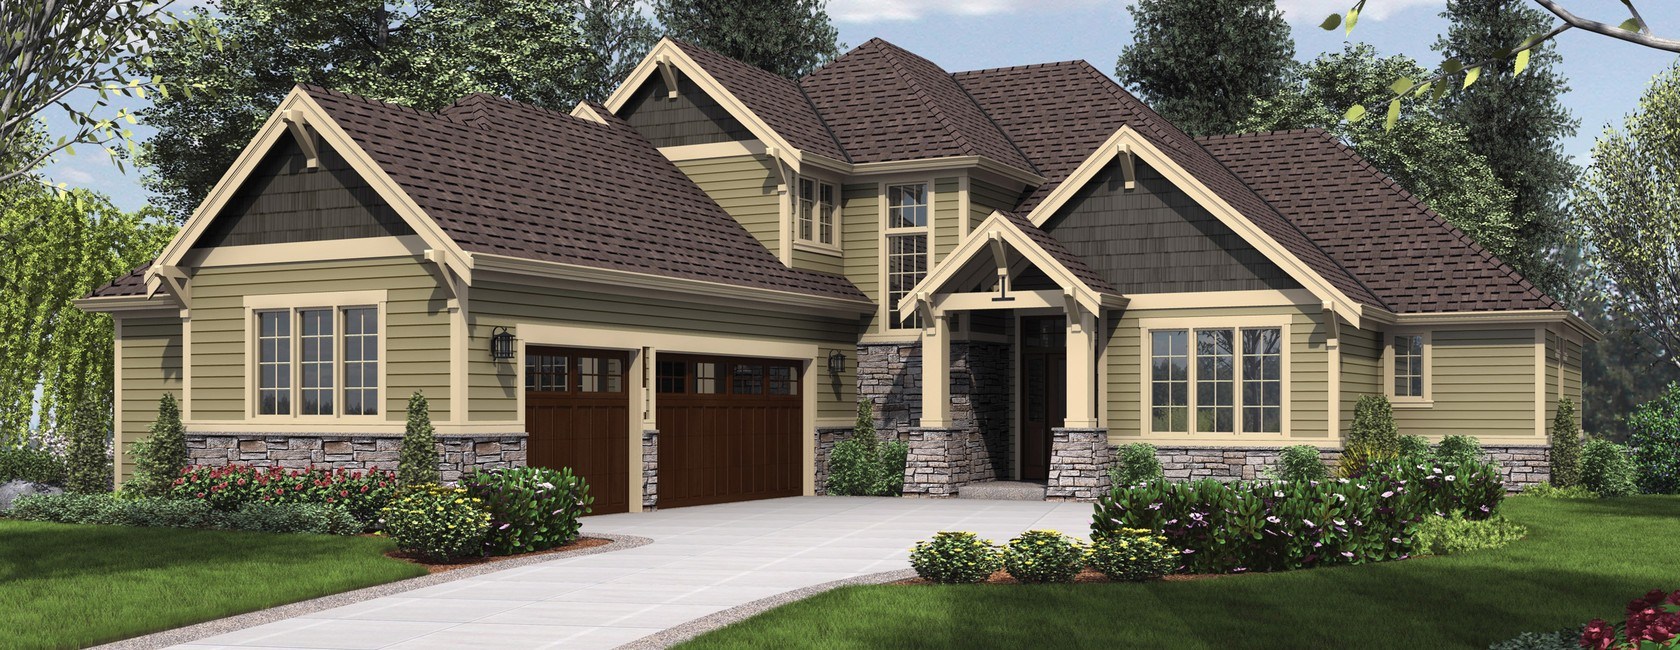 The vidabelo a multigenerational design house plan of for Multi generational home designs